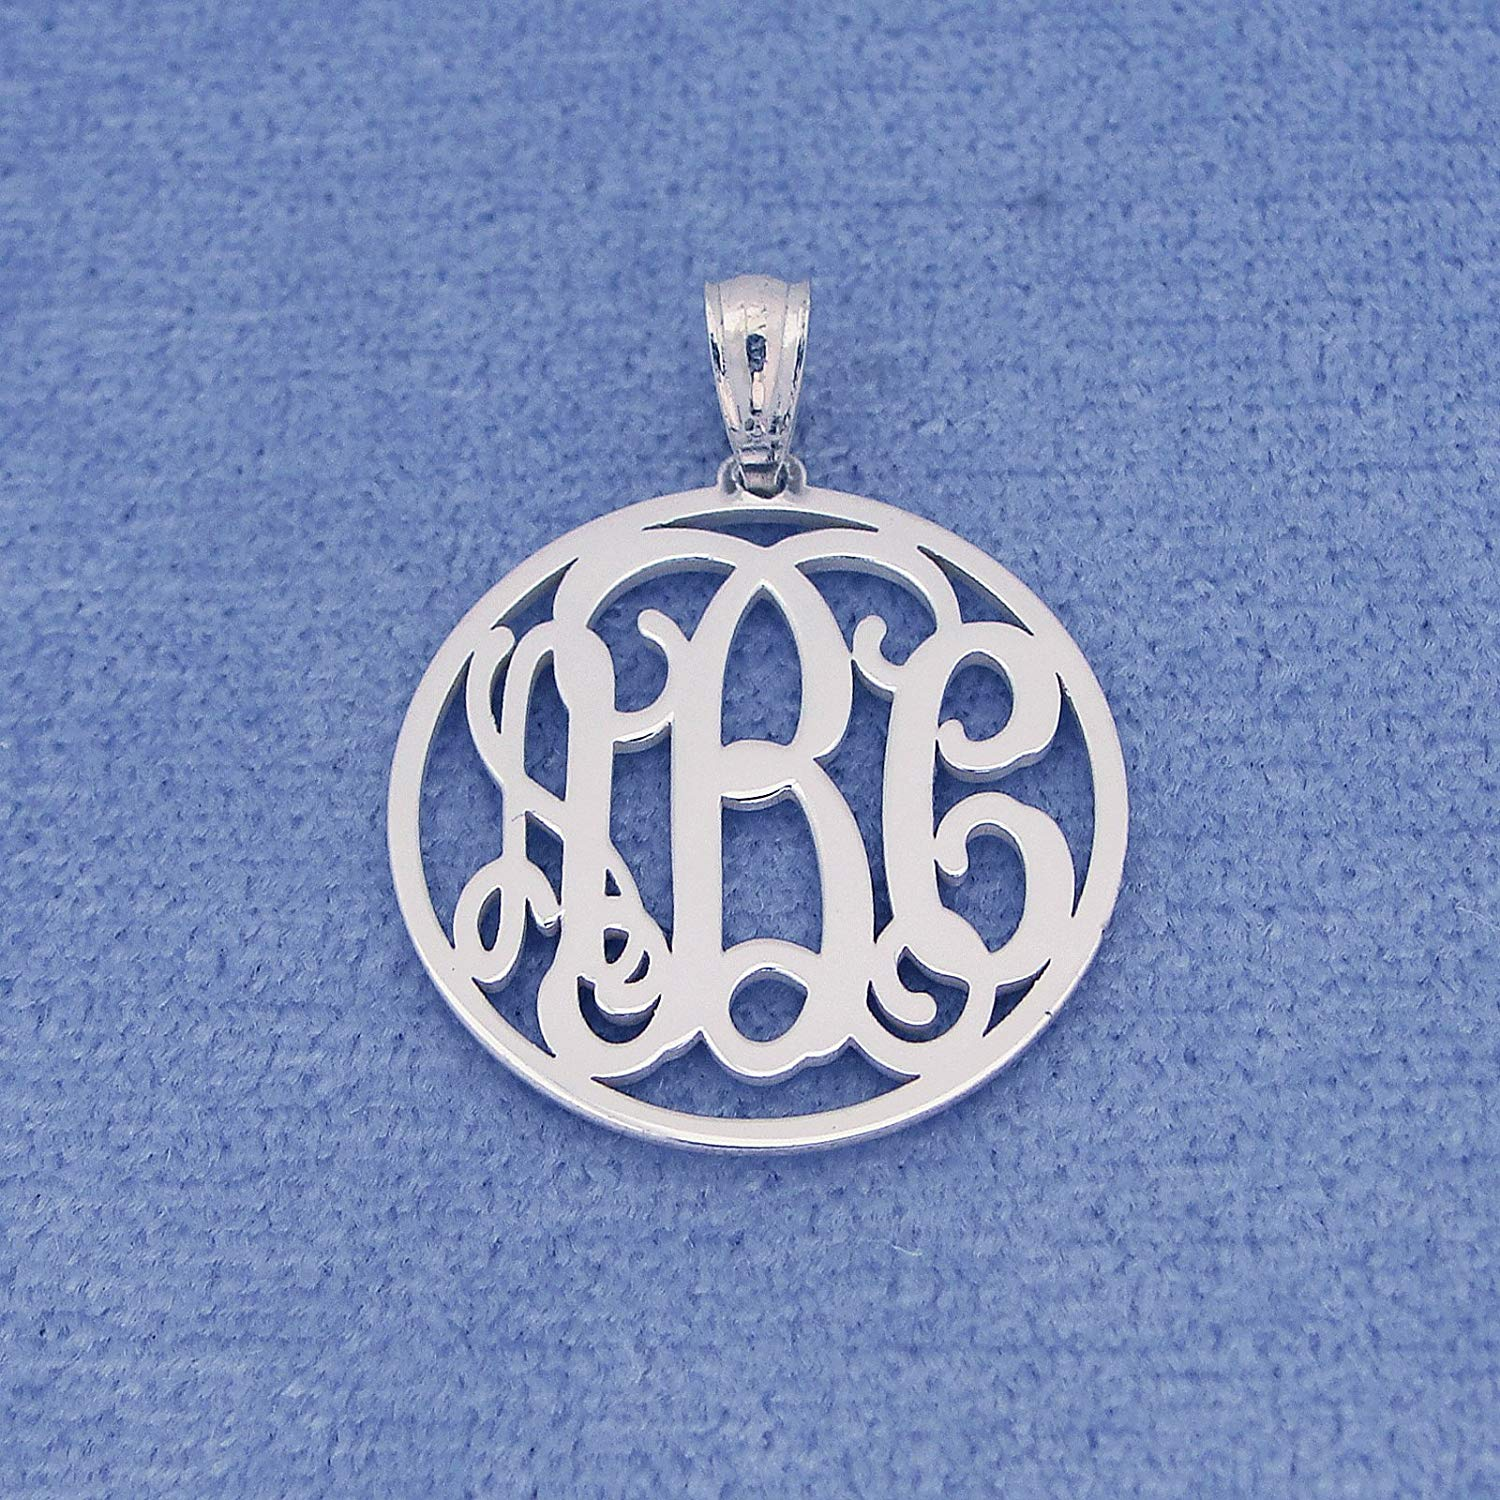 3 Initials Monogram Pendant 3/4 Inch Solid Sterling Silver Personalized Monogrammed Gift SM41